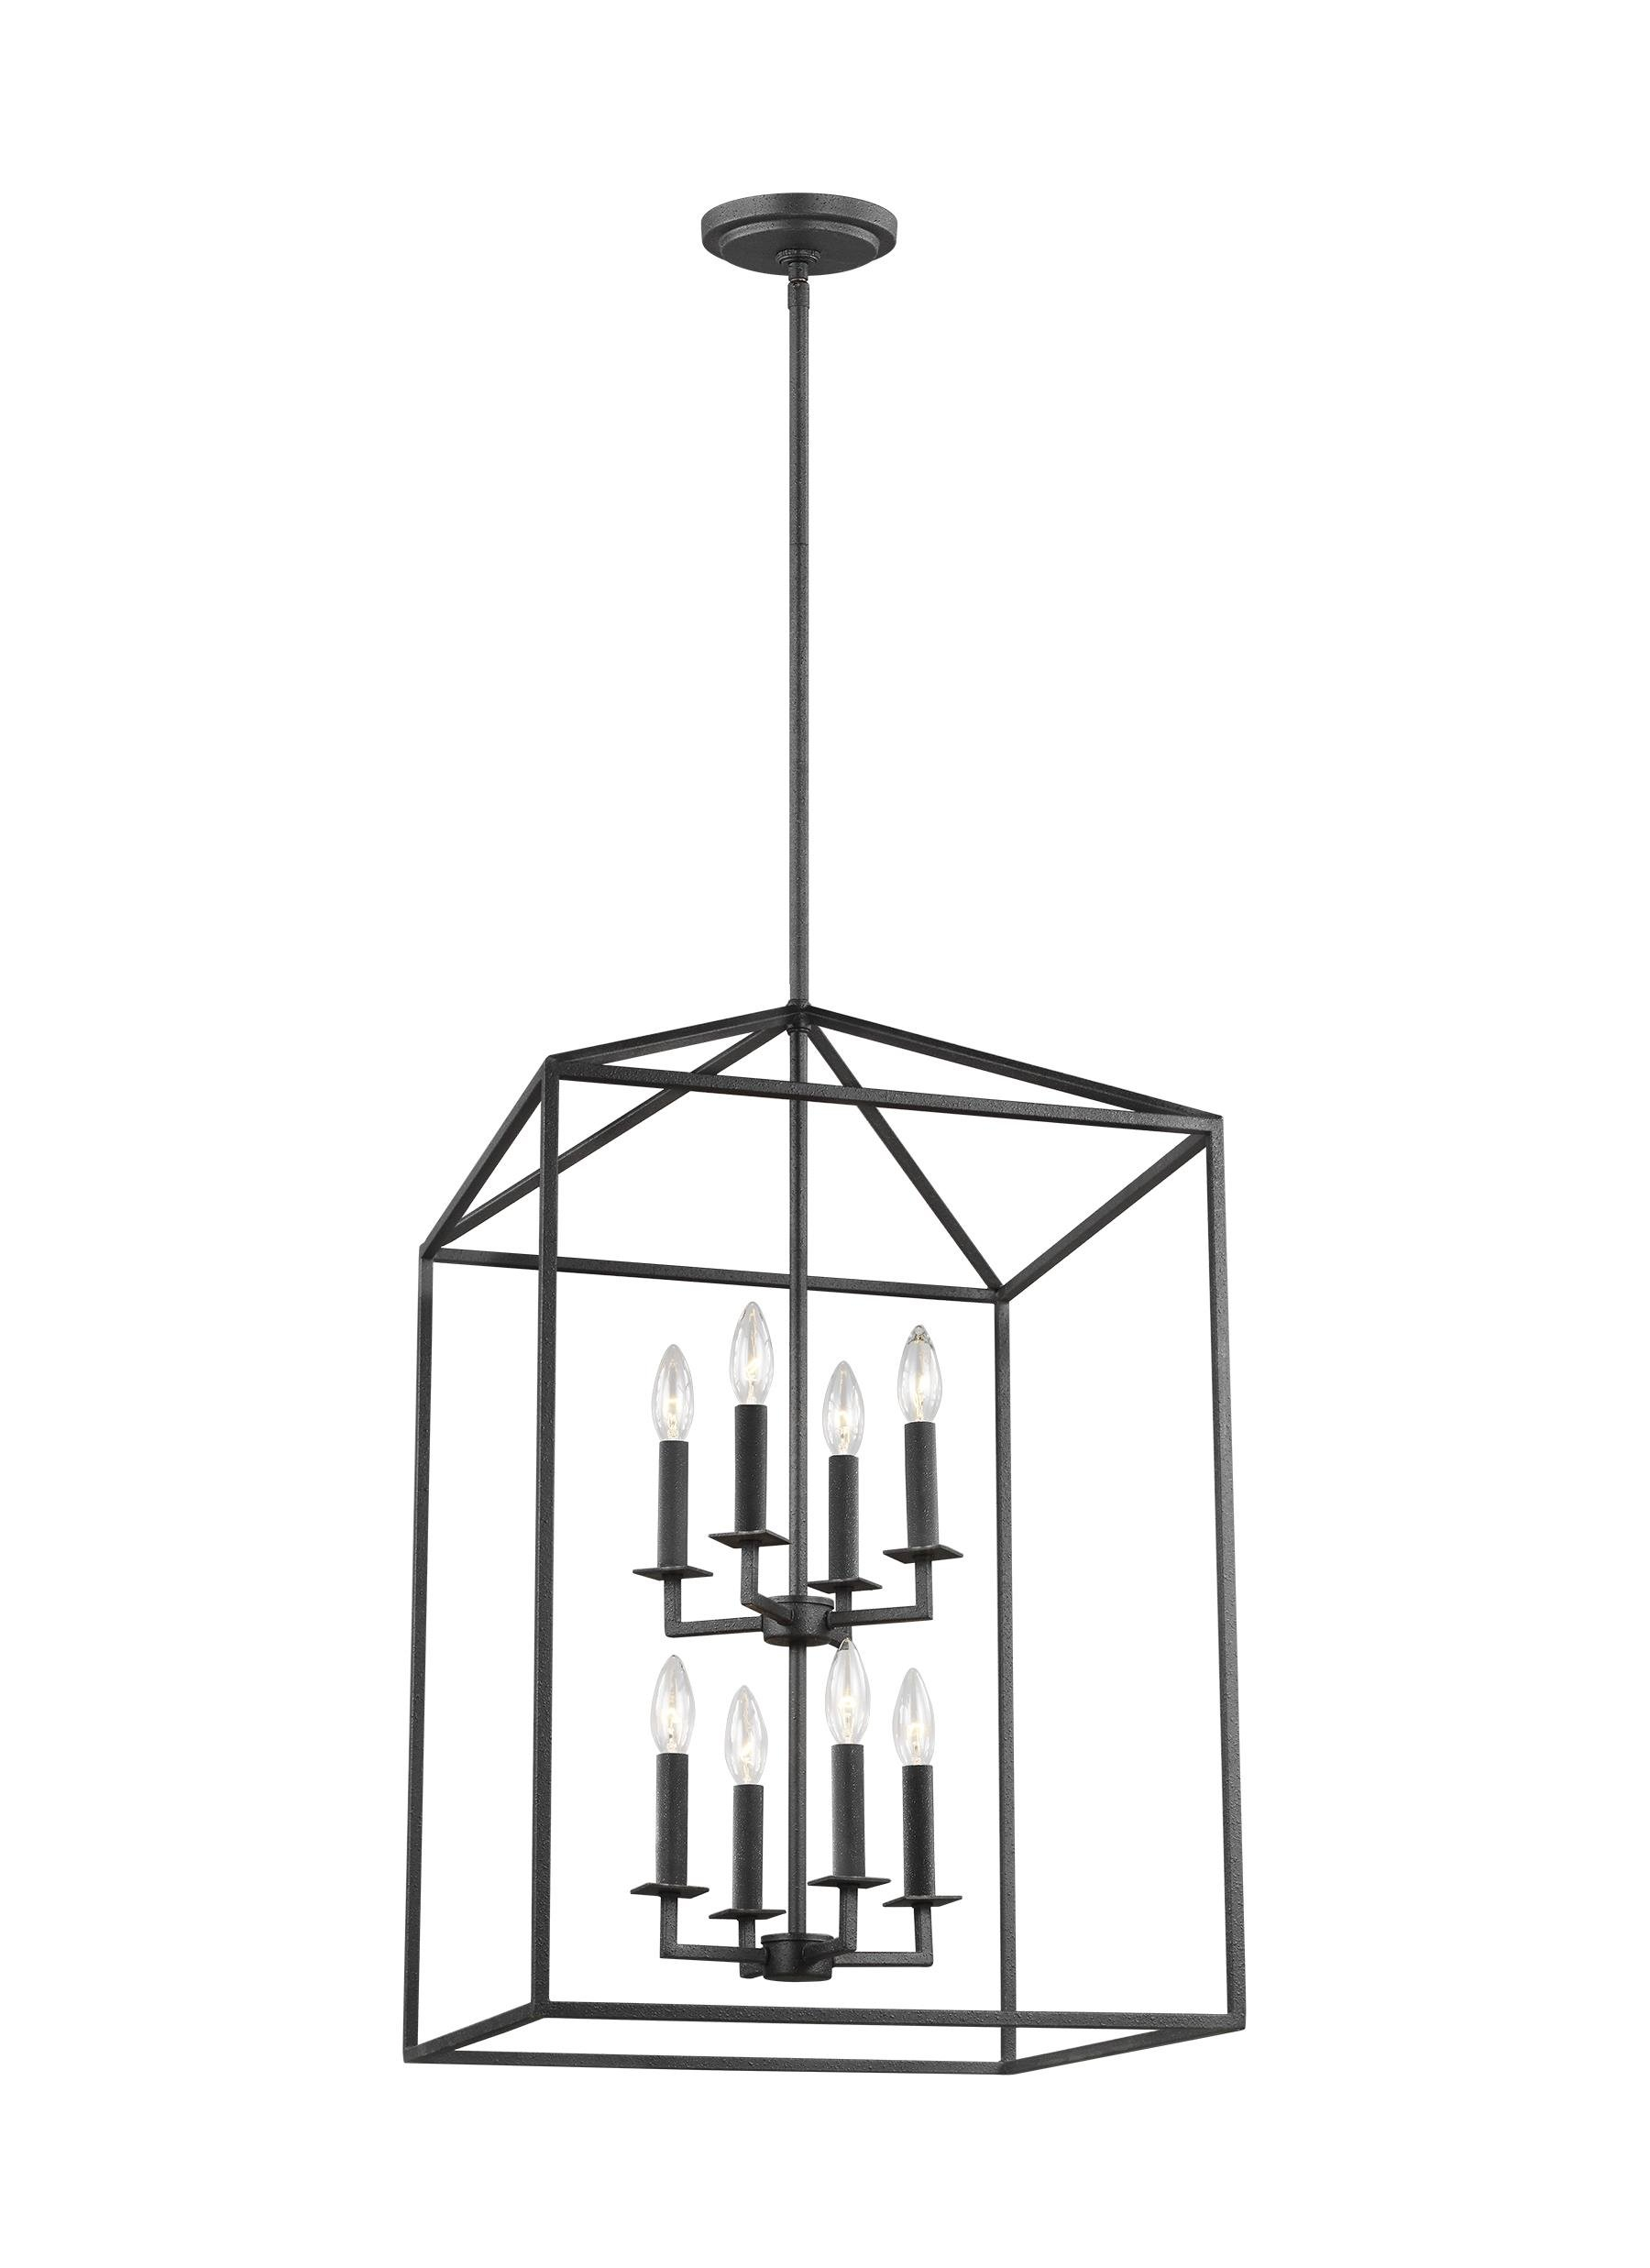 Odie 8-Light Lantern Square / Rectangle Pendant with regard to Odie 8-Light Kitchen Island Square / Rectangle Pendants (Image 22 of 30)